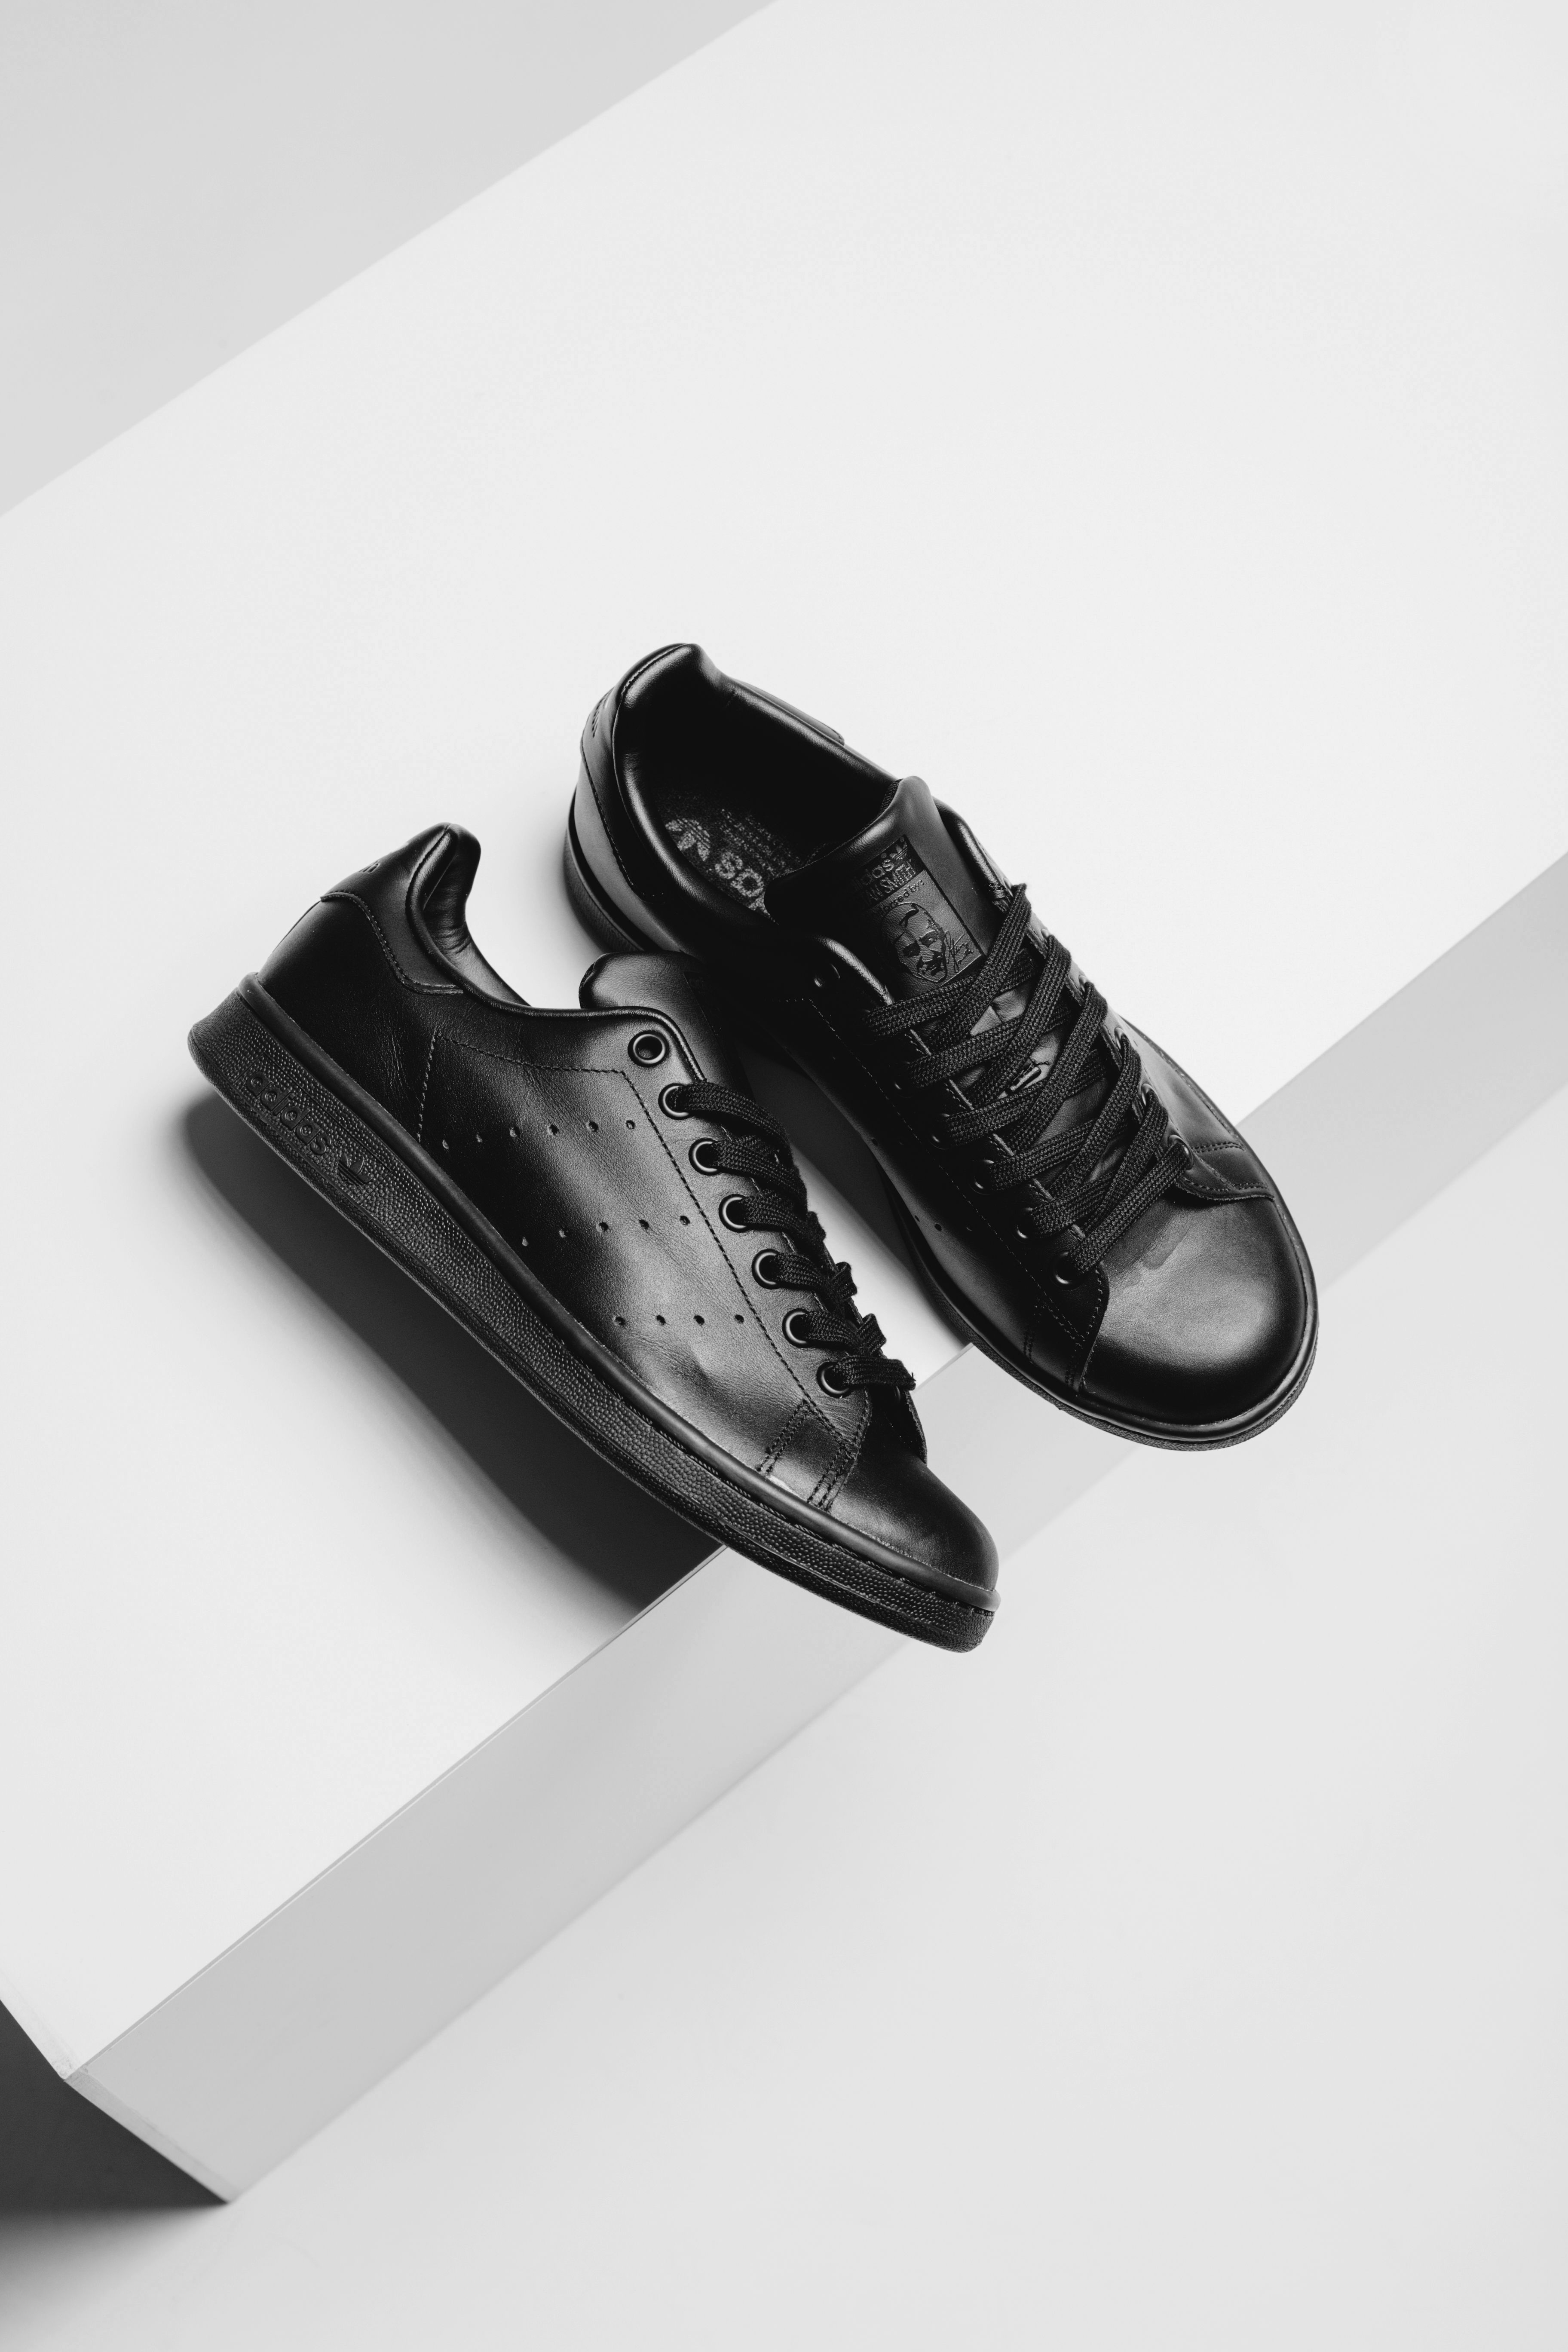 competitive price 058a5 e708f Adidas Originals Stan Smith  Triple Black   Adidas  StanSmith  TripleBlack   Fashion  Streetwear  Style  Urban  Lookbook  Photography  Footwear   Sneakers ...